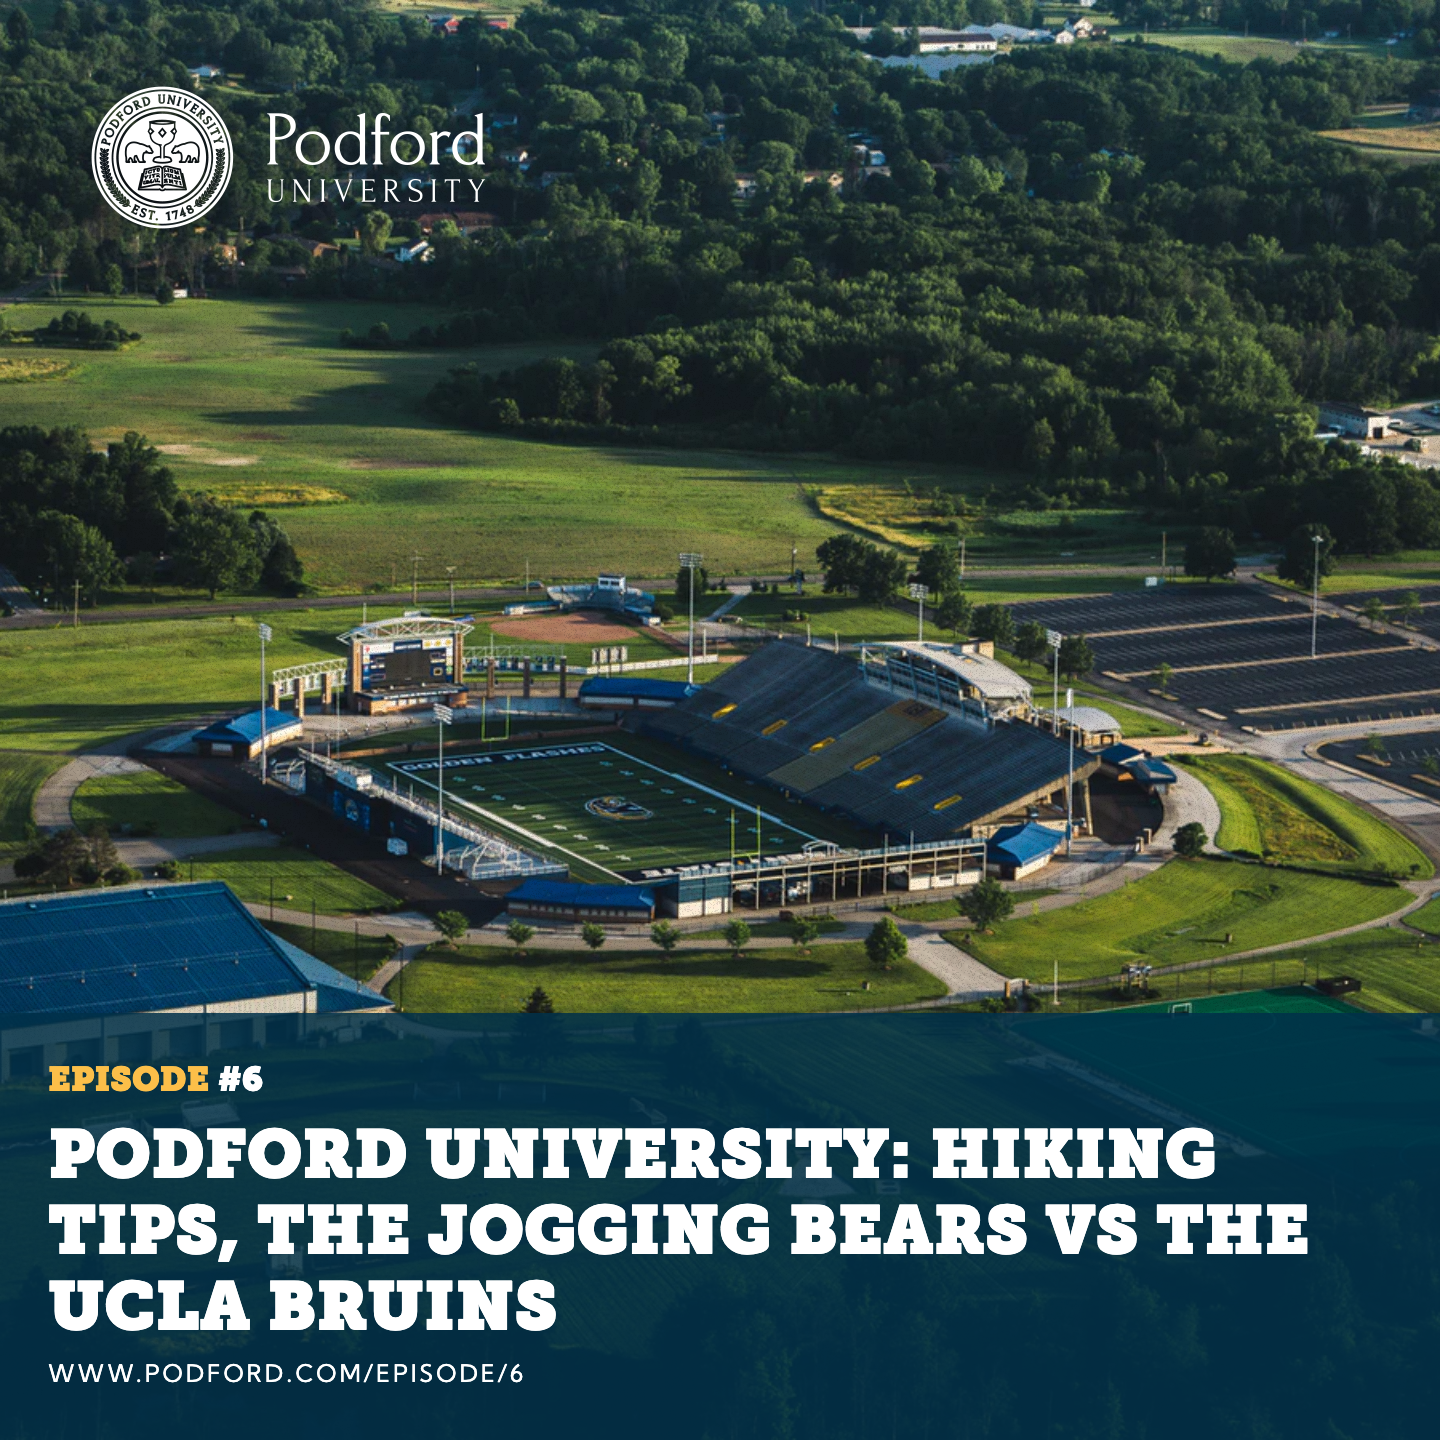 Podford University: Hiking Tips, The Jogging Bears VS The UCLA Bruins